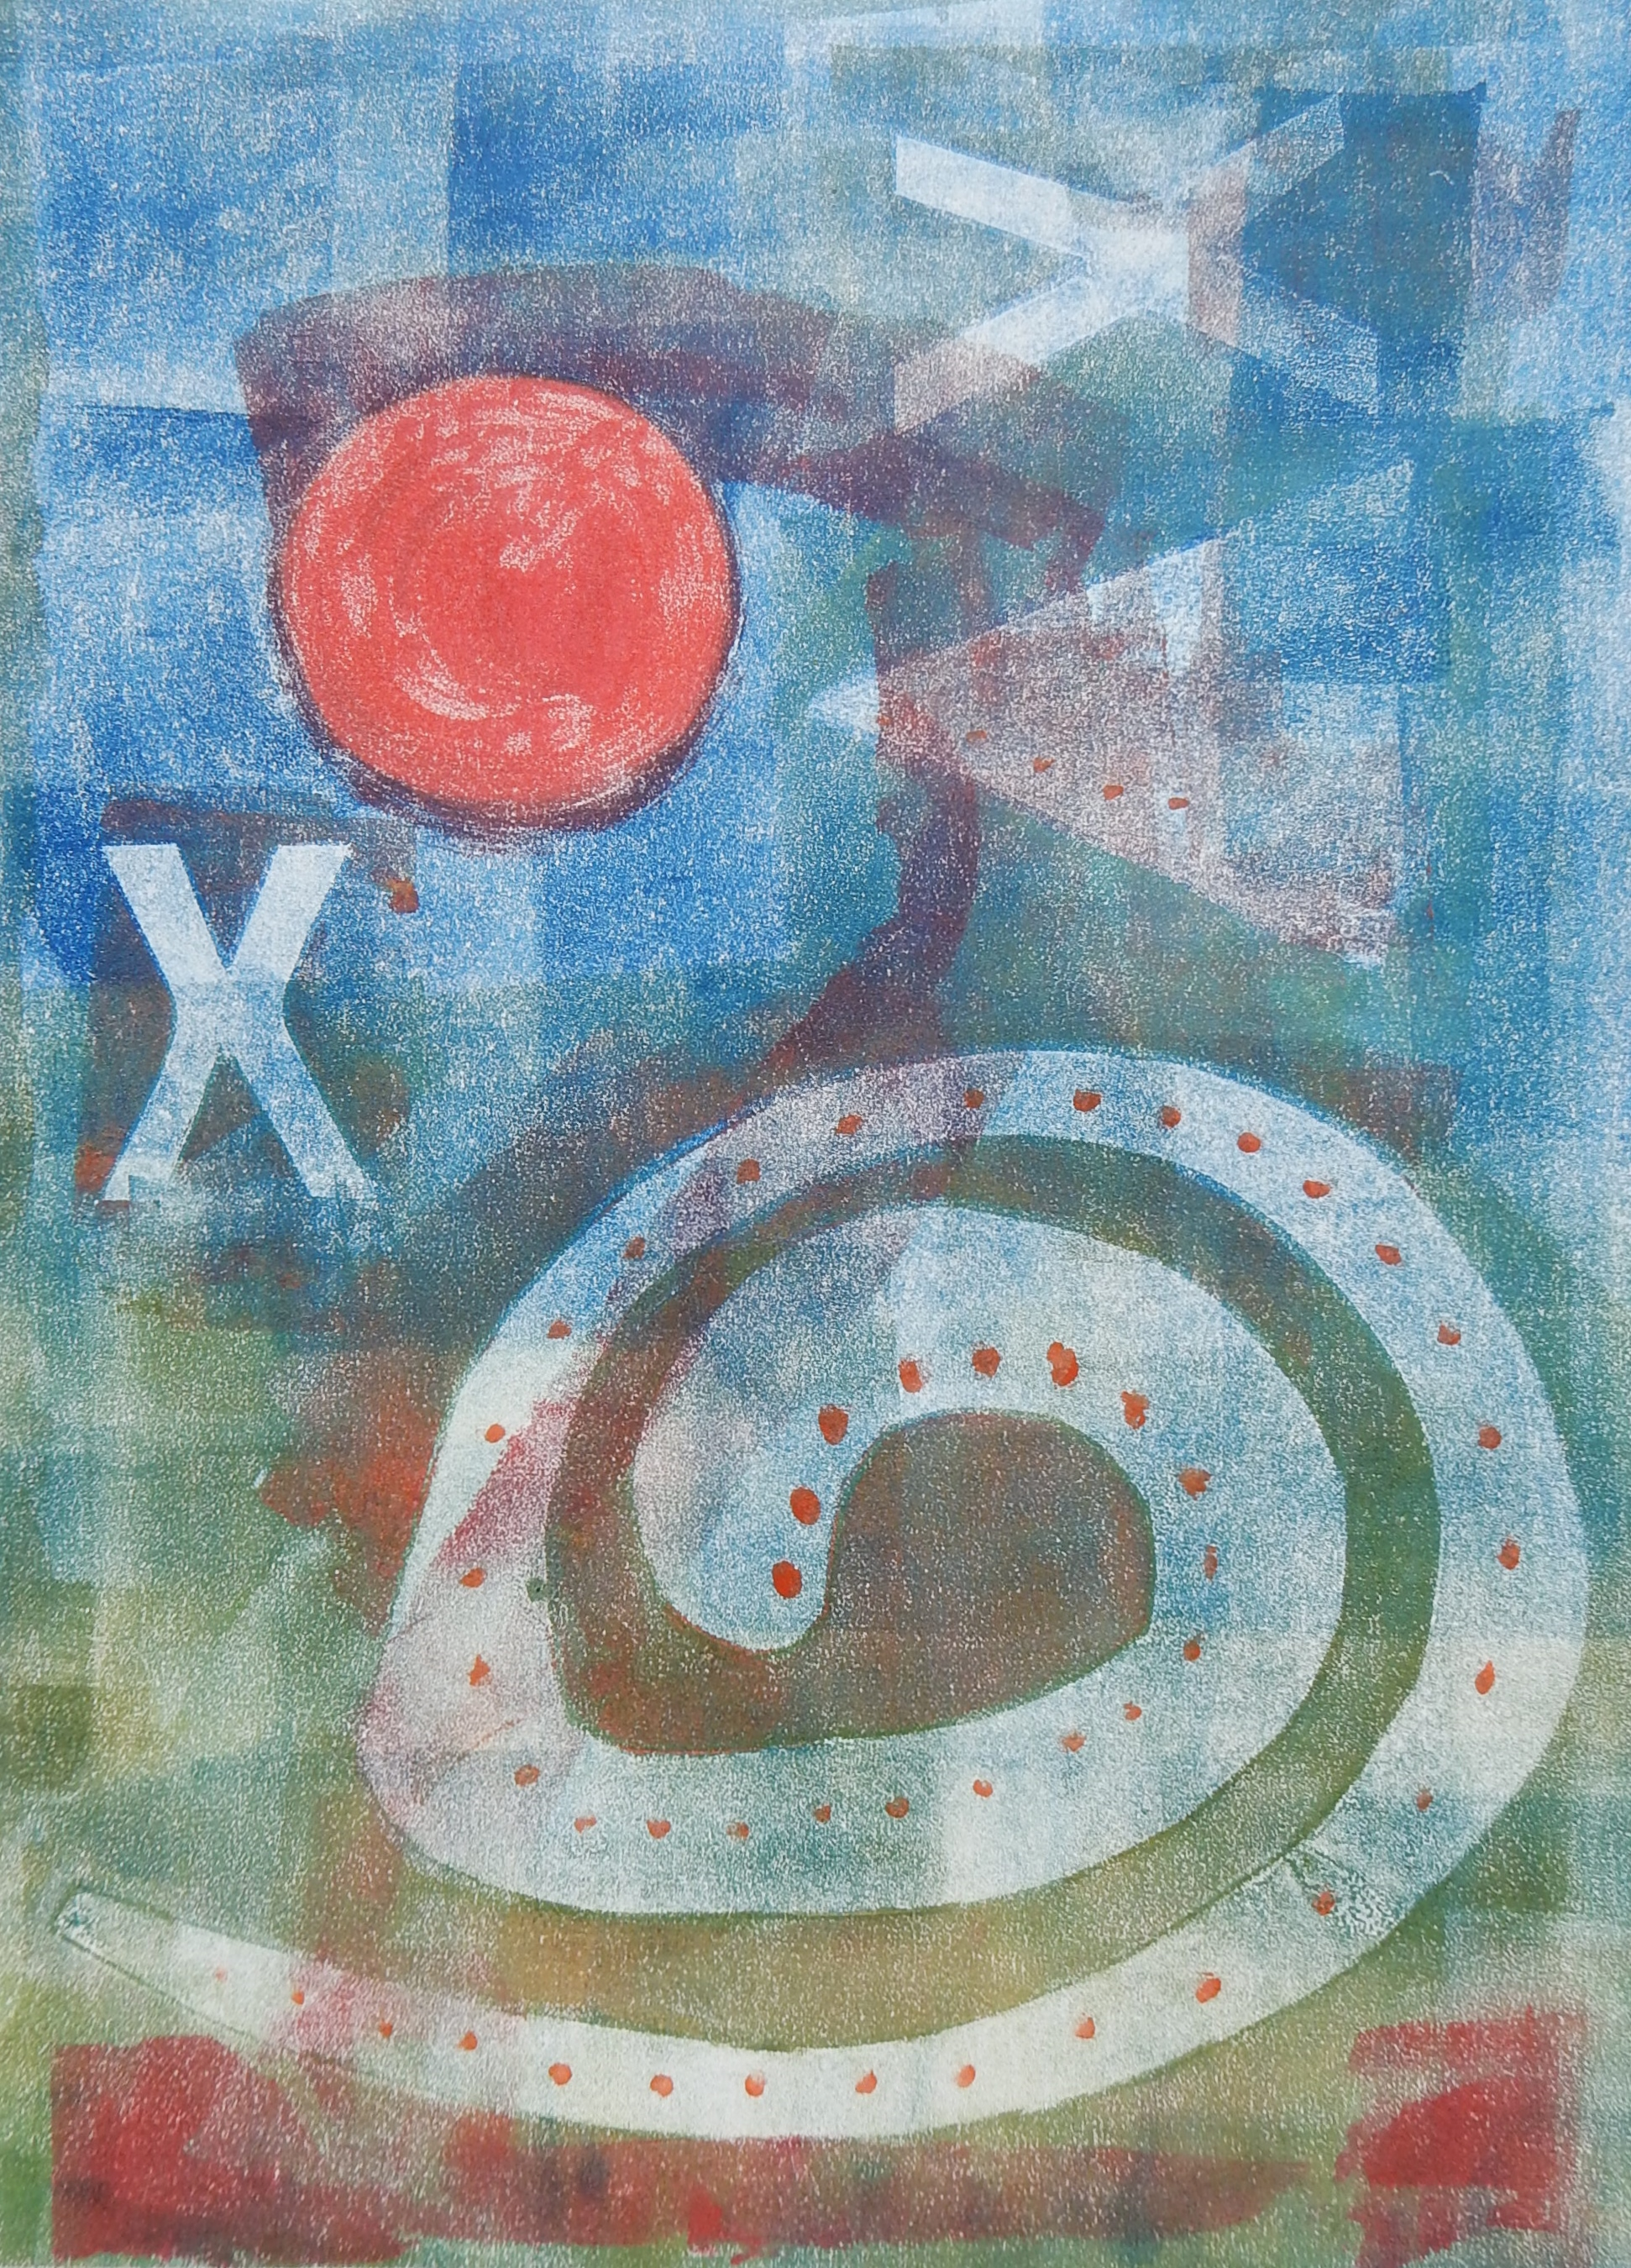 Space X to Mars - Monotype